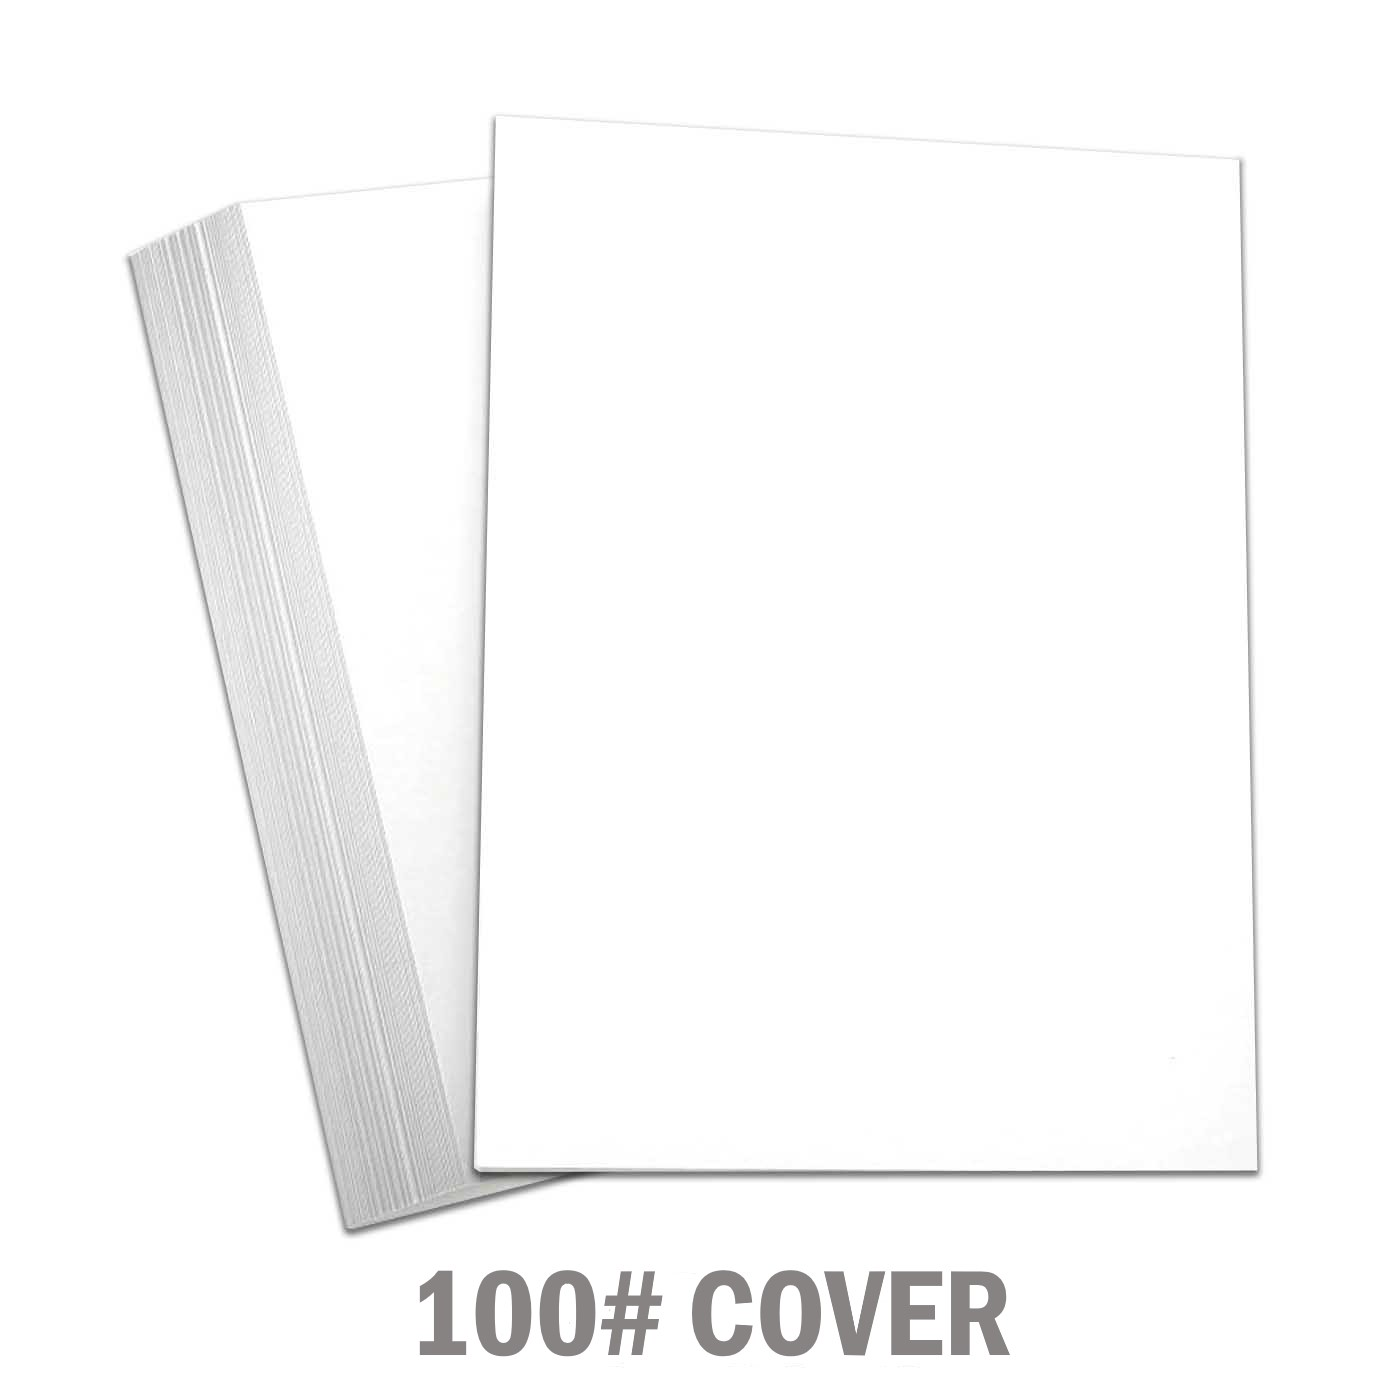 New Christmas Cards Premium White Card Stock 270gsm Digitally Printed Pack 10